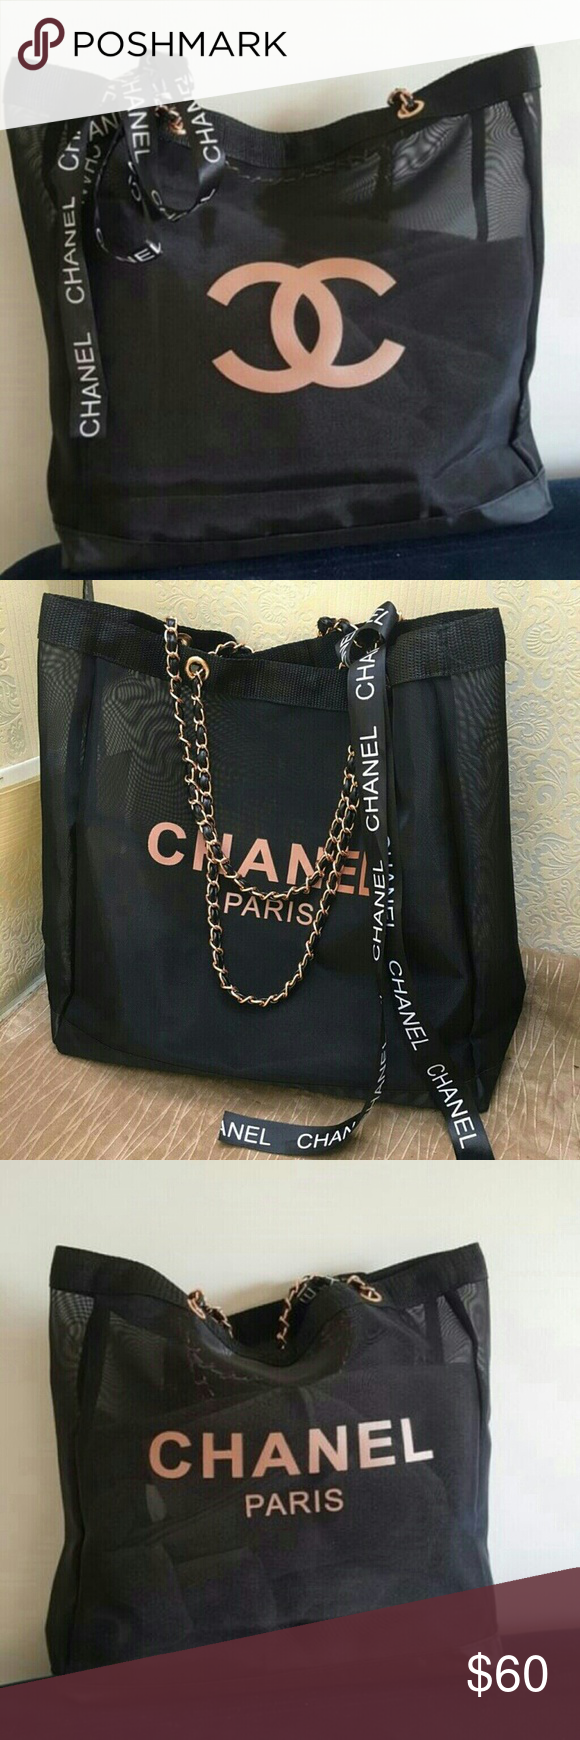 79ab8912d245 Chanel Rose Gold Chain Mesh Tote Bag Tote has Rose Gold color CC logo  printed on